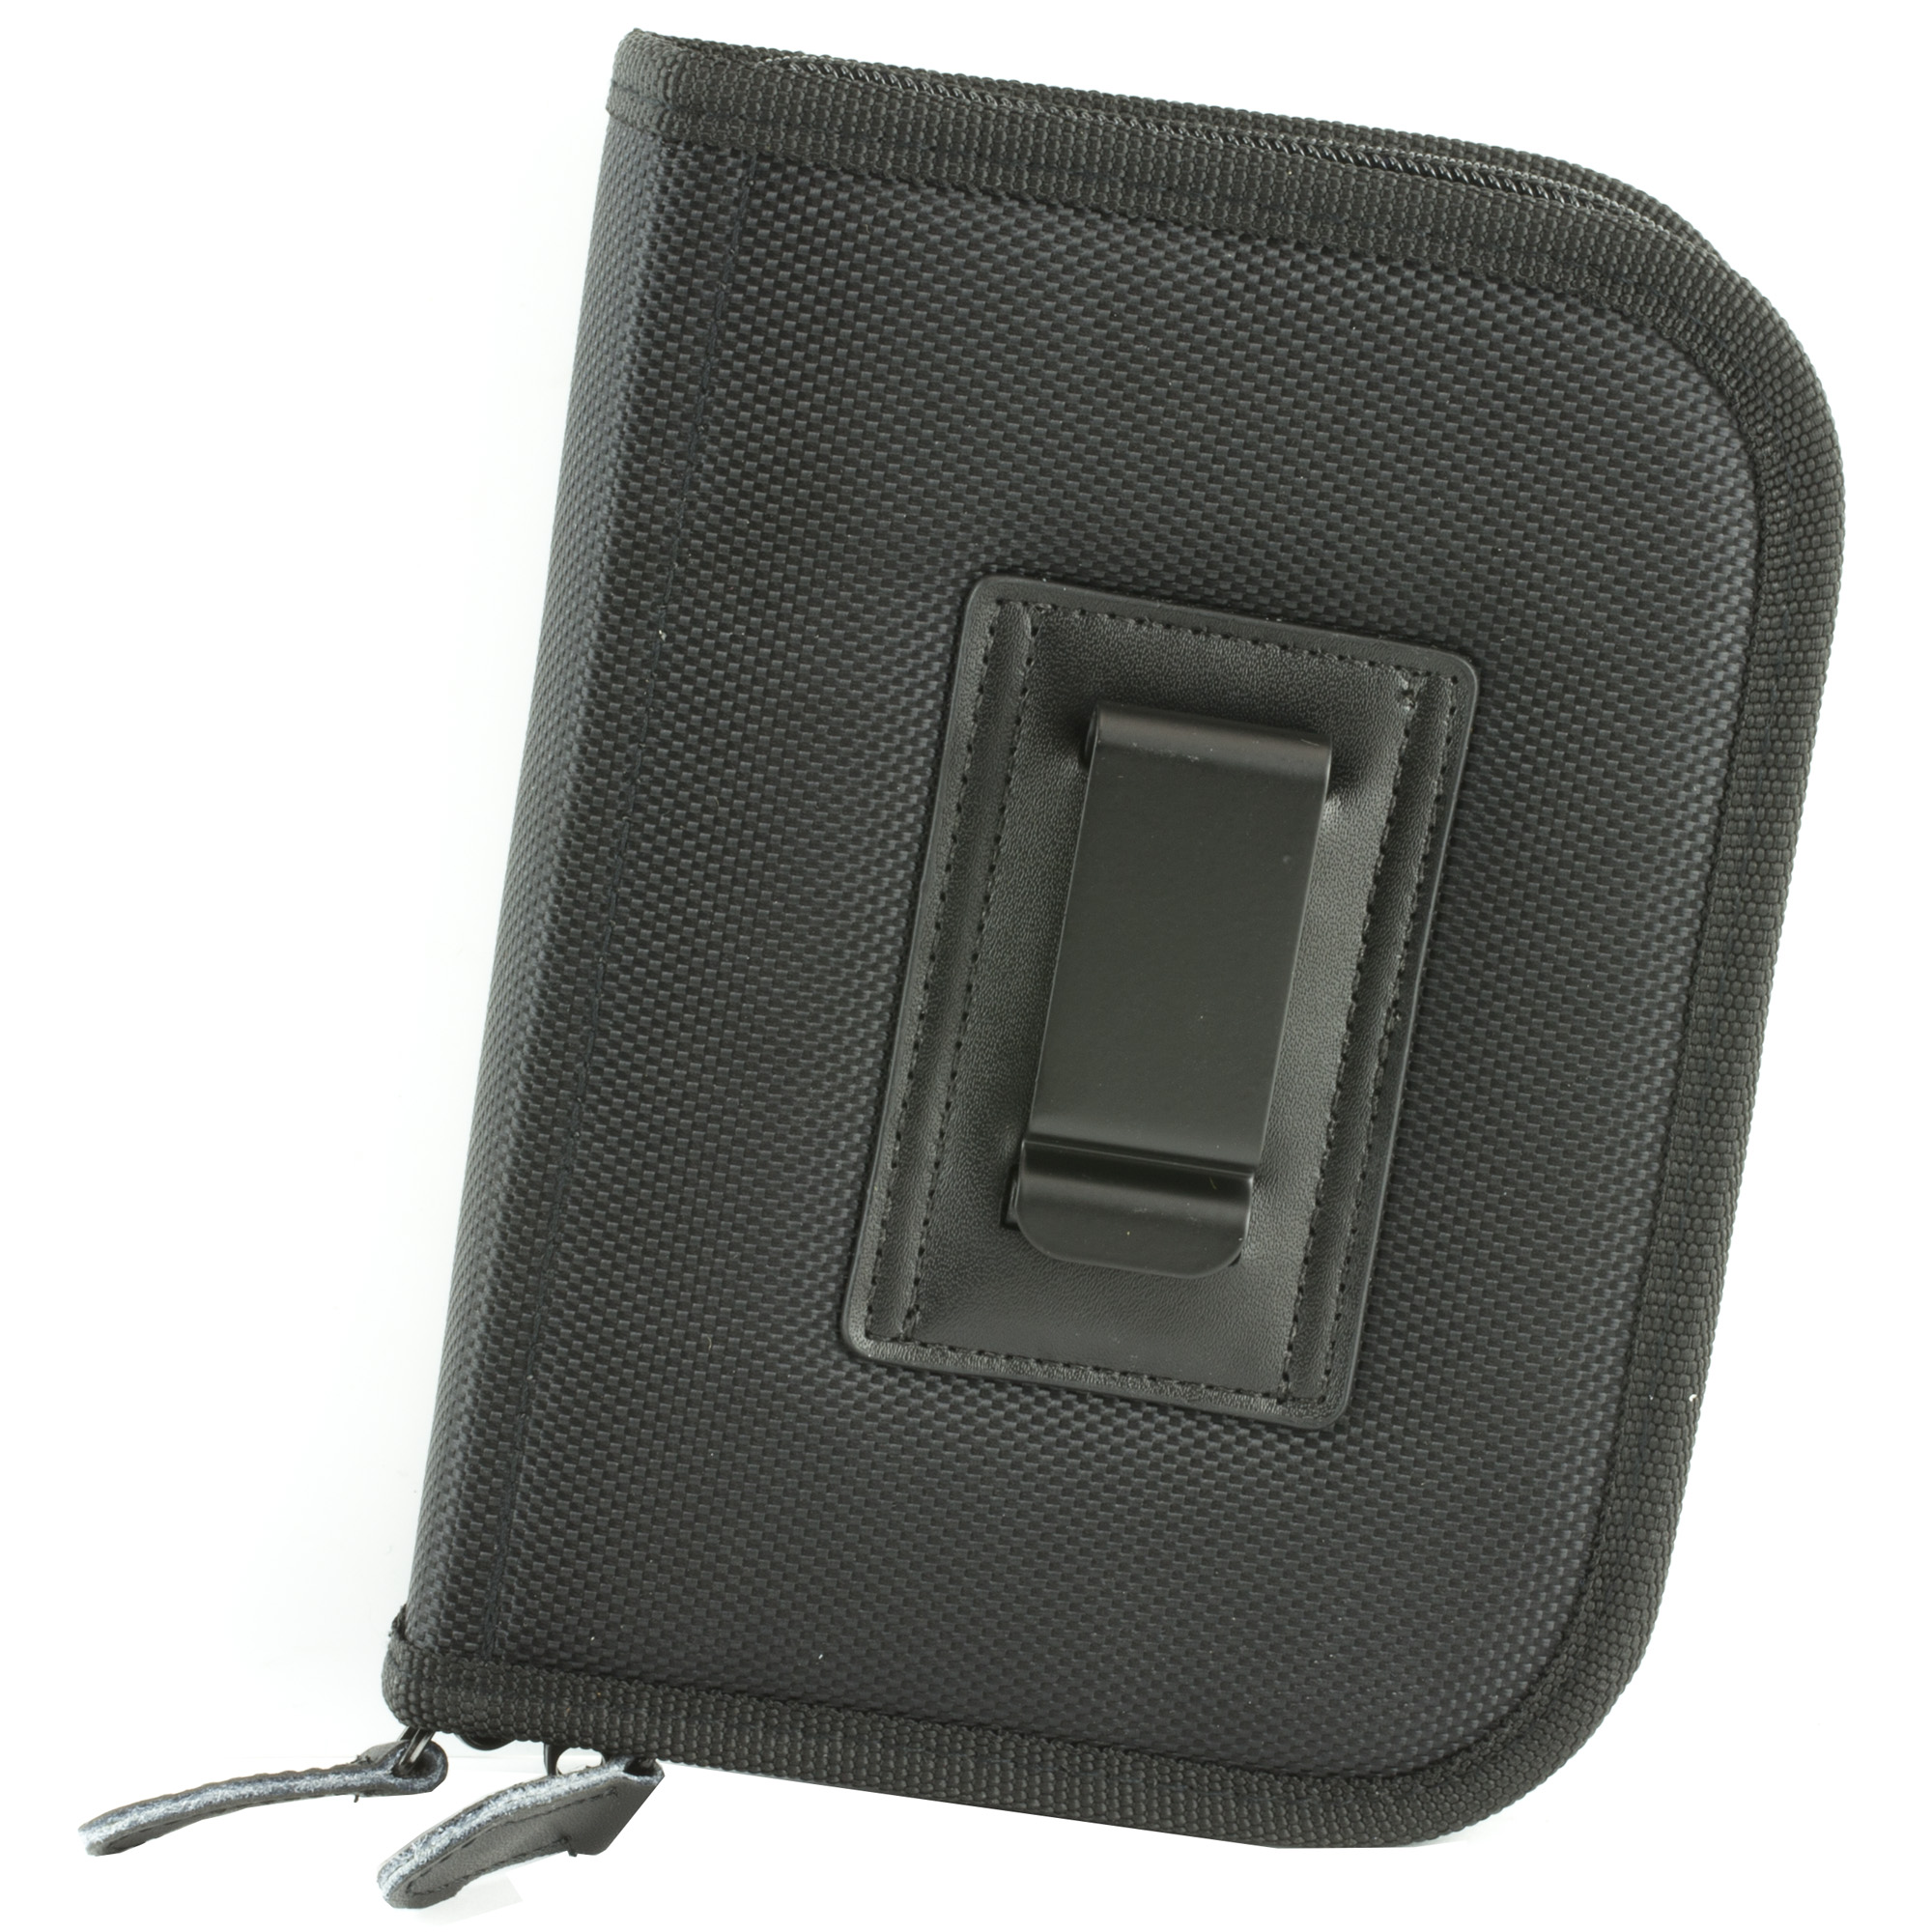 This small Holster-Mate Case holds up to 2 small pistols and 2 extra magazines. Convenient for home and travel.